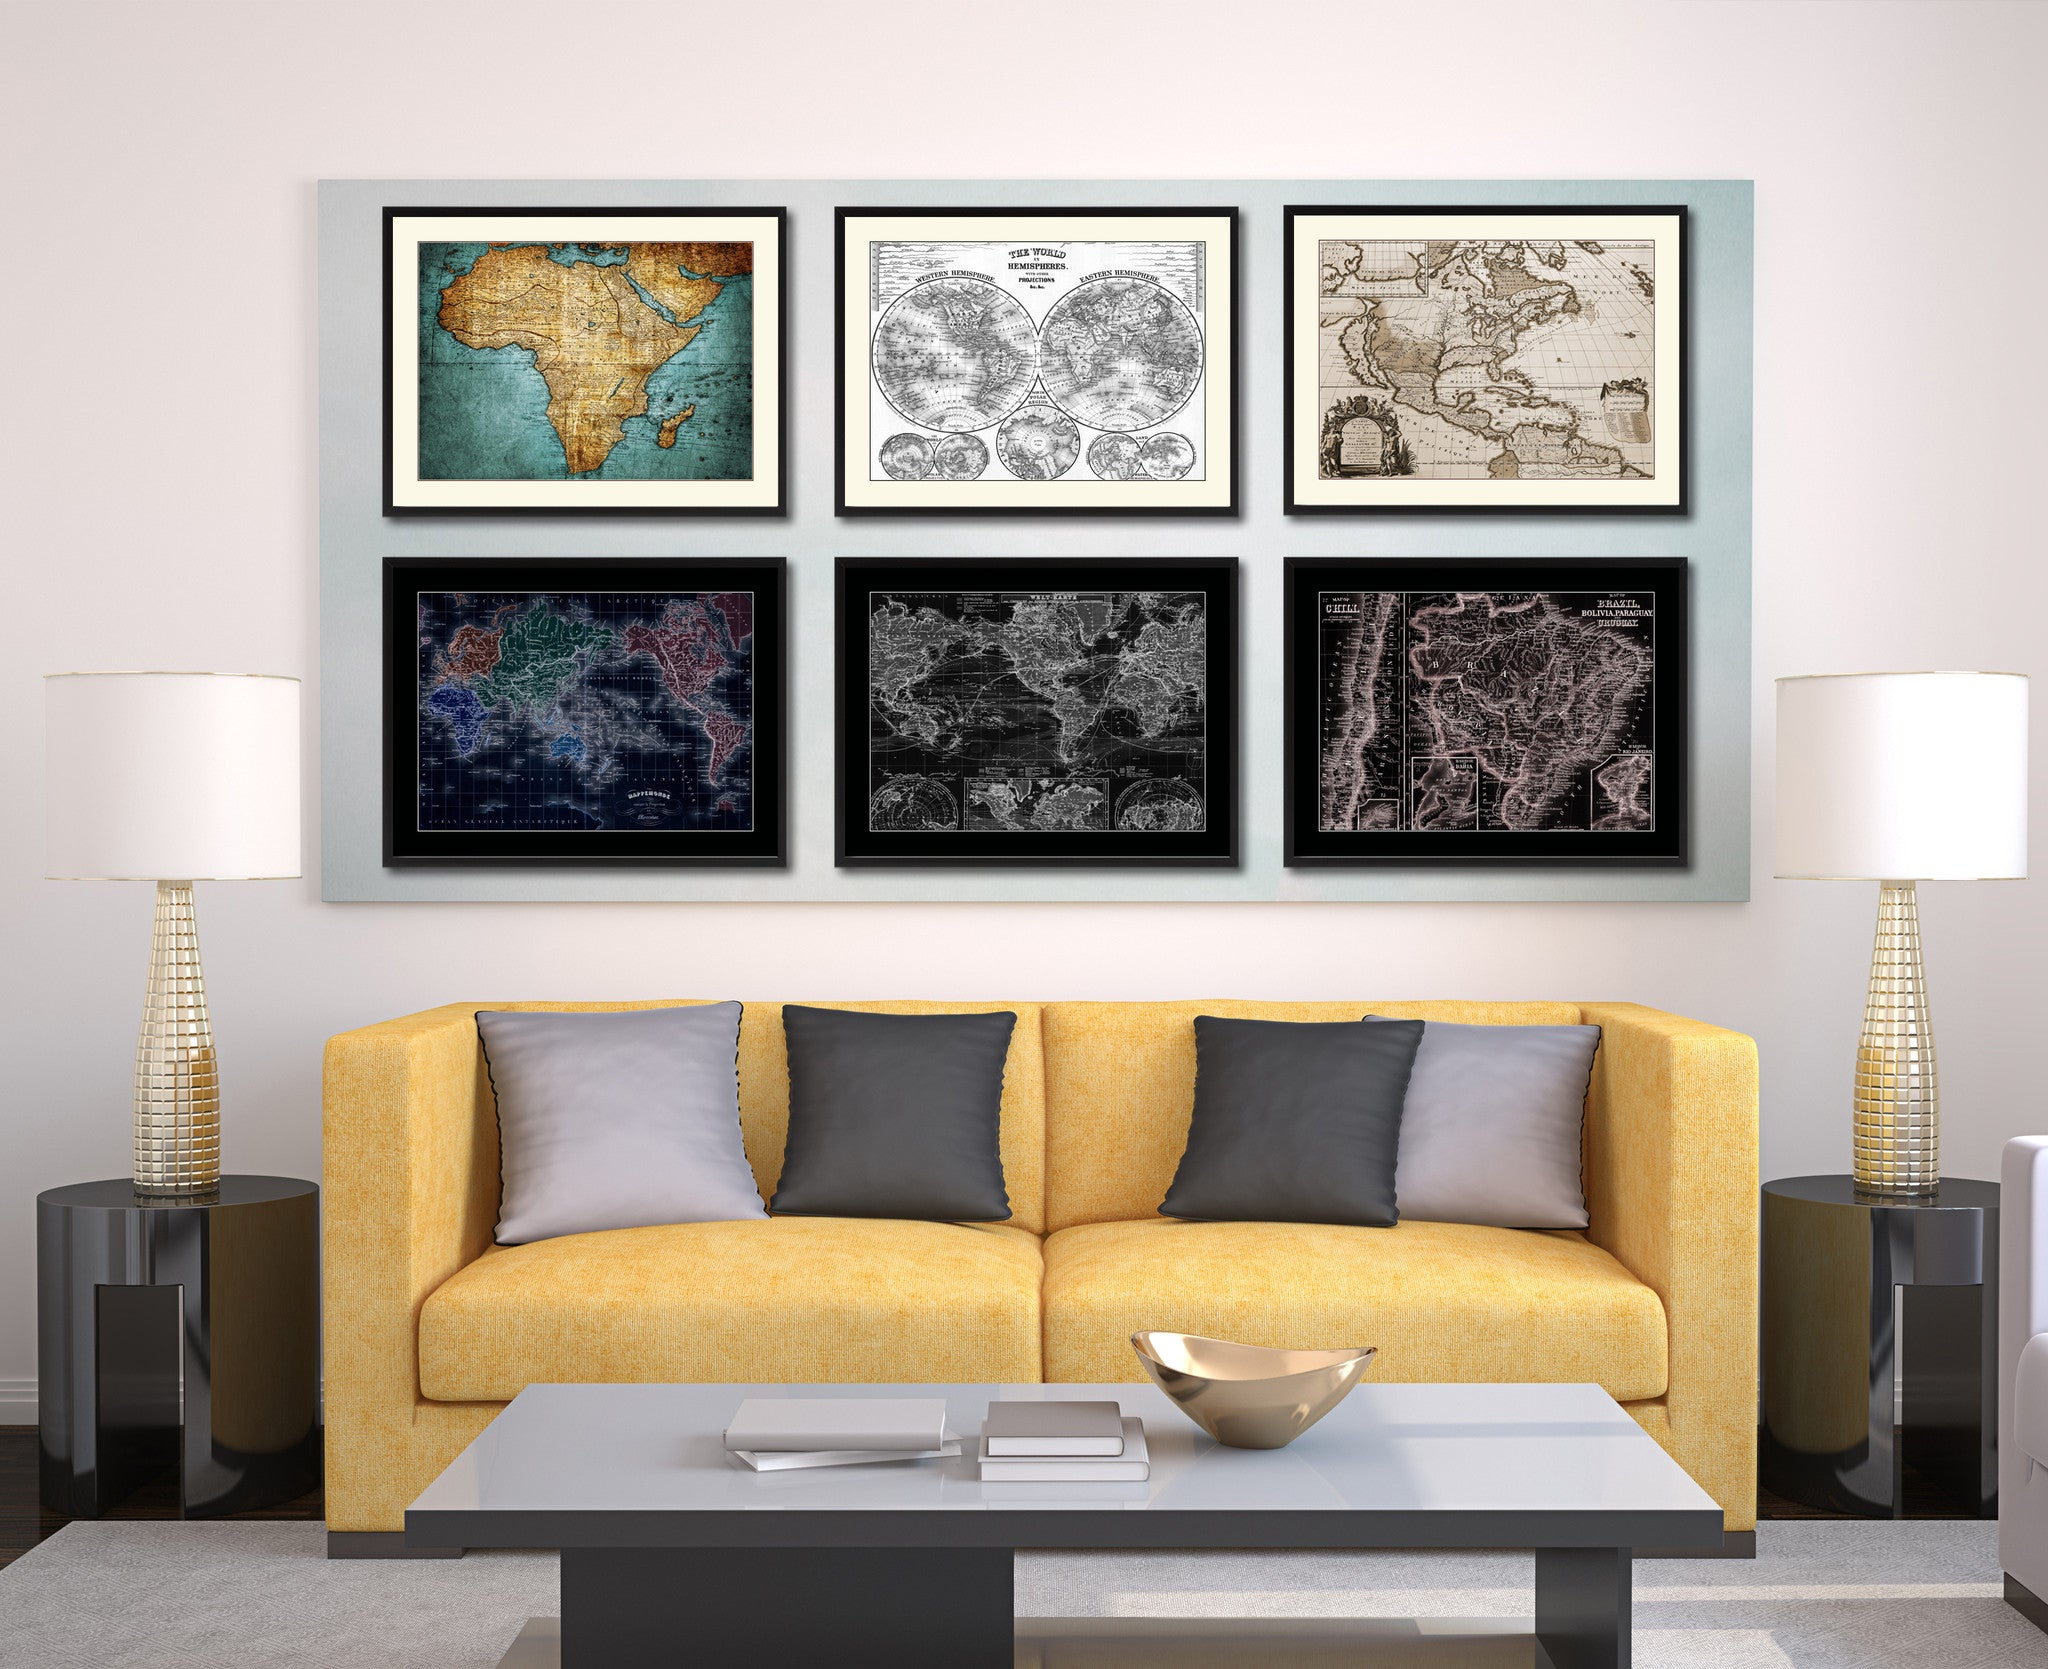 Afghanistan Persia Iraq Iran Vintage Vivid Sepia Map Canvas Print, Picture Frames Home Decor Wall Art Decoration Gifts